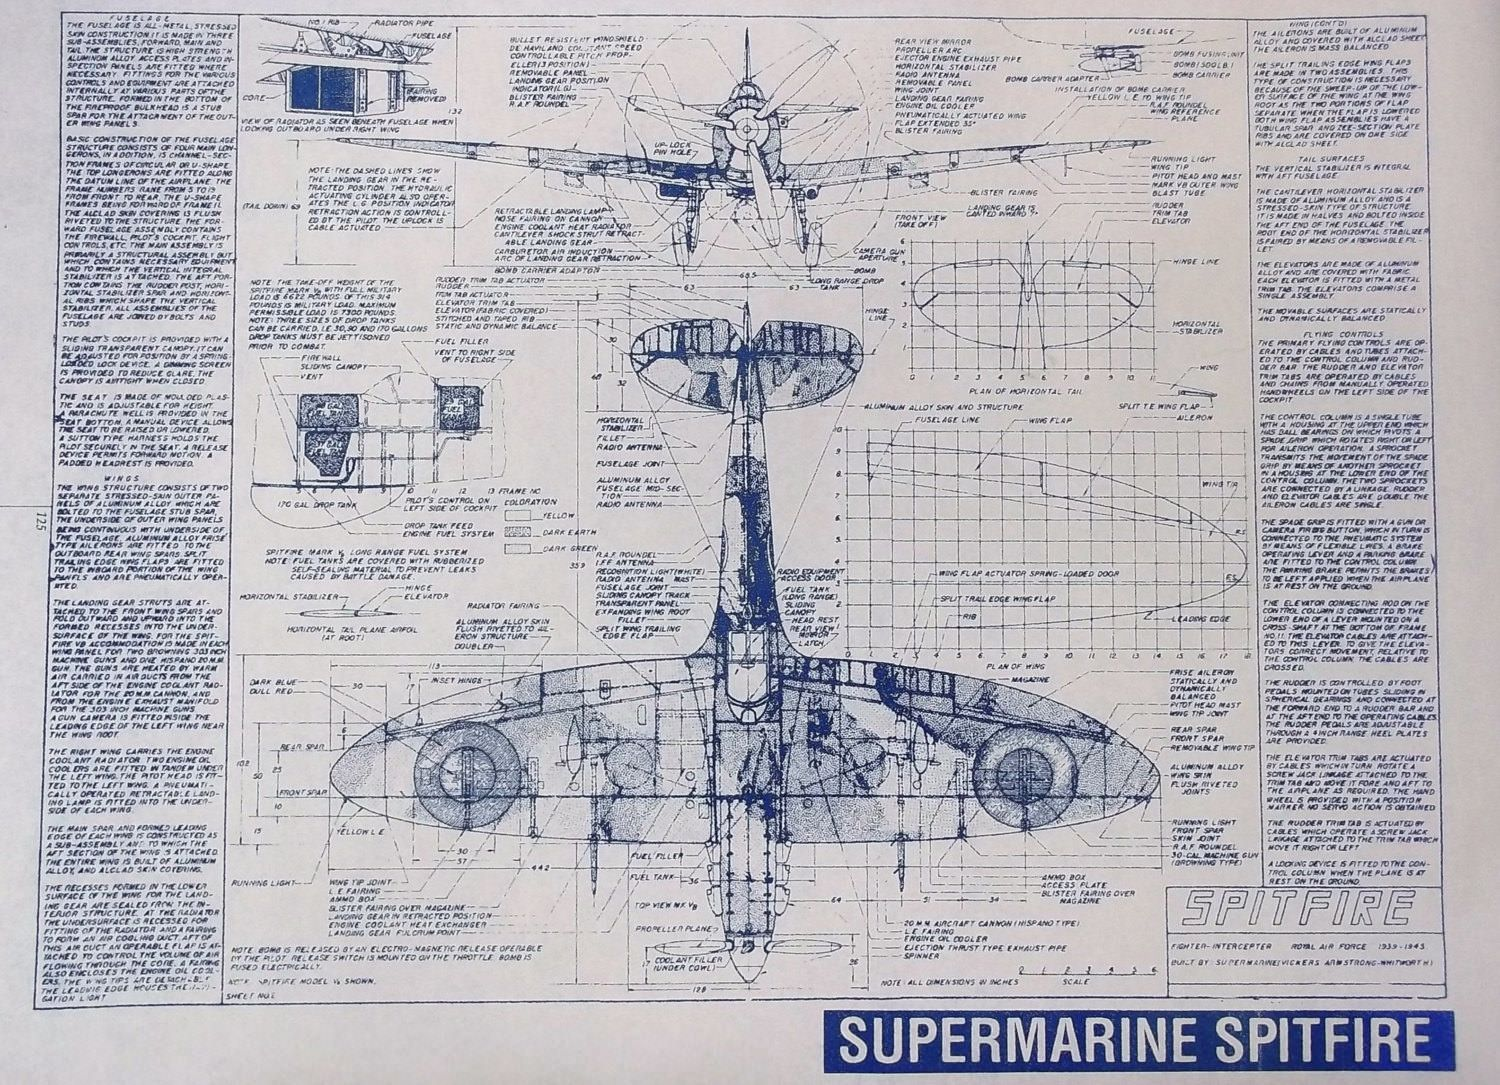 Supermarine spitfire blueprints plany pinterest supermarine the beautiful supermarine spitfire blueprints you see here are made using the old fashioned method ammonia activated paper on a traditional diazit malvernweather Gallery